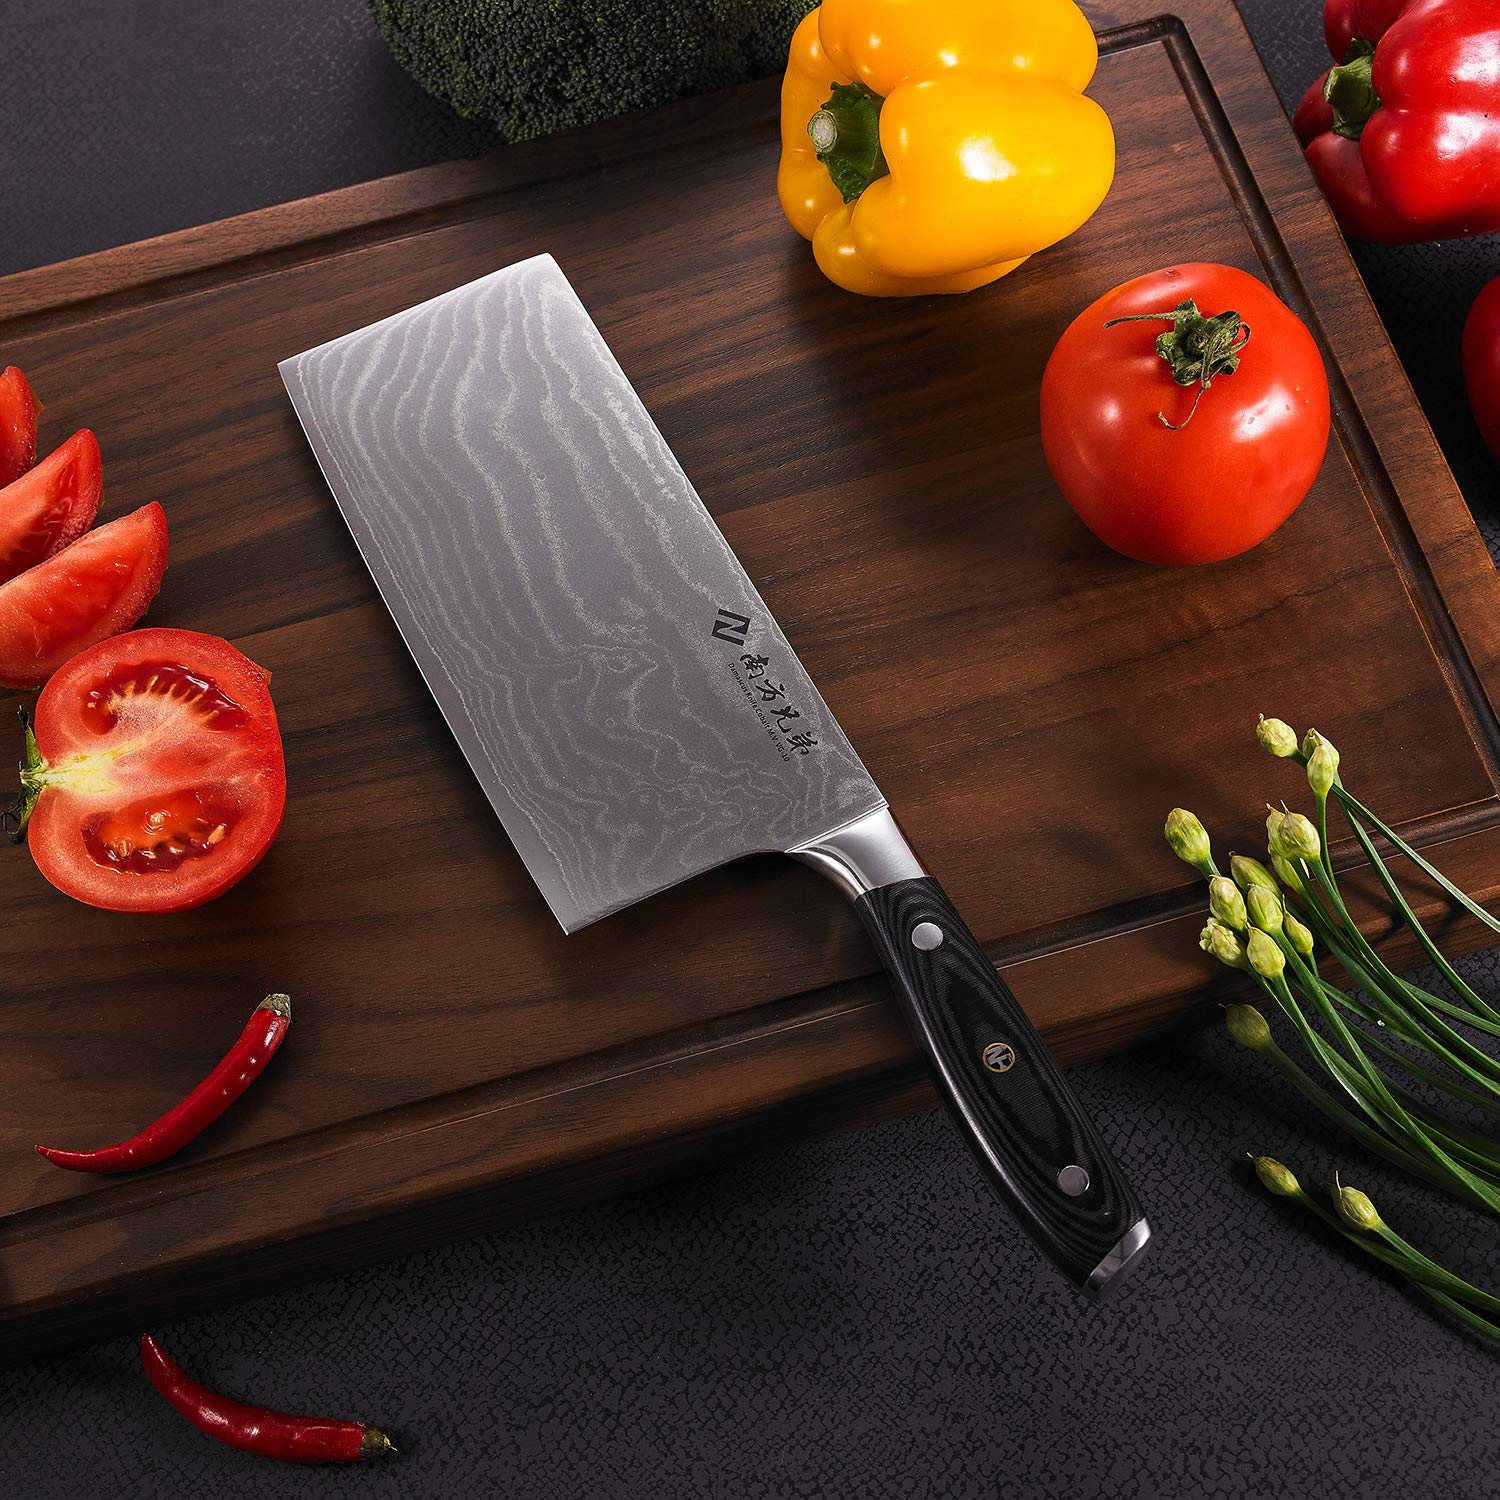 """Damascus Cleaver Knife, 7.2"""" Stainless Steel Chinese Chef Knives Vegetable Knife with Wooden Handle, Multipurpose Use for Kitchen or Restaurant by Nanfang Brothers (Image #6)"""